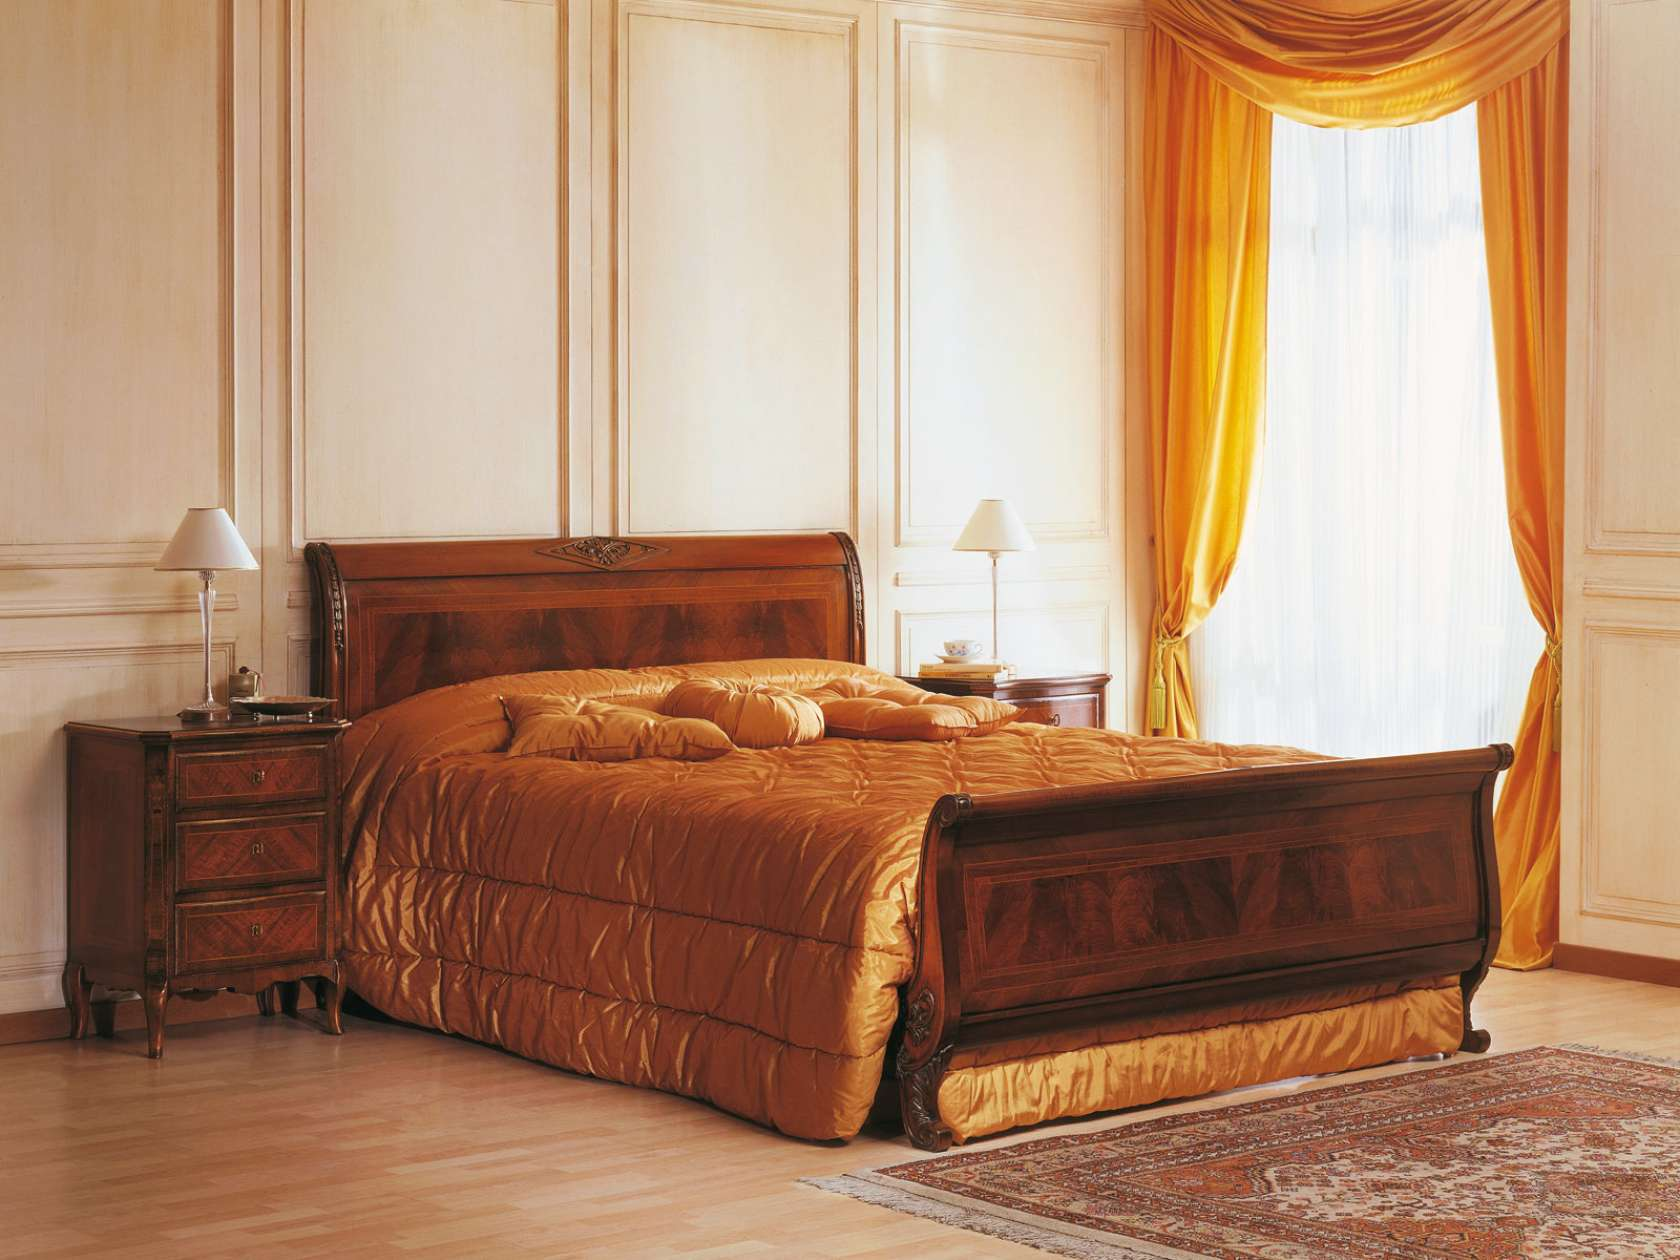 French style bedroom of the nineteenth century vimercati for Style o bedroom sax